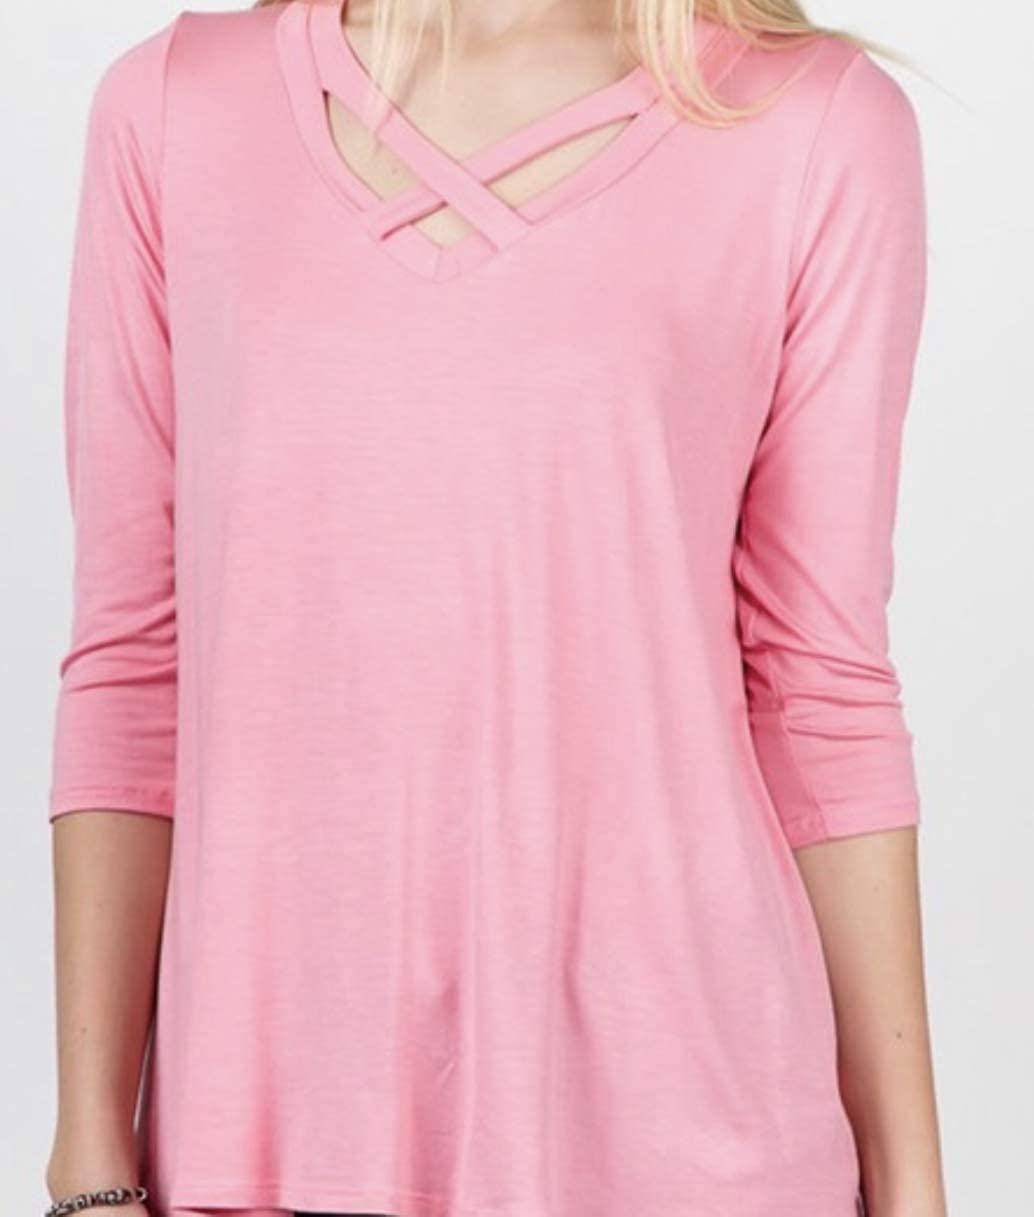 Crisscross at Neckline and Loose fit top Blush Pink 3//4 Sleeve